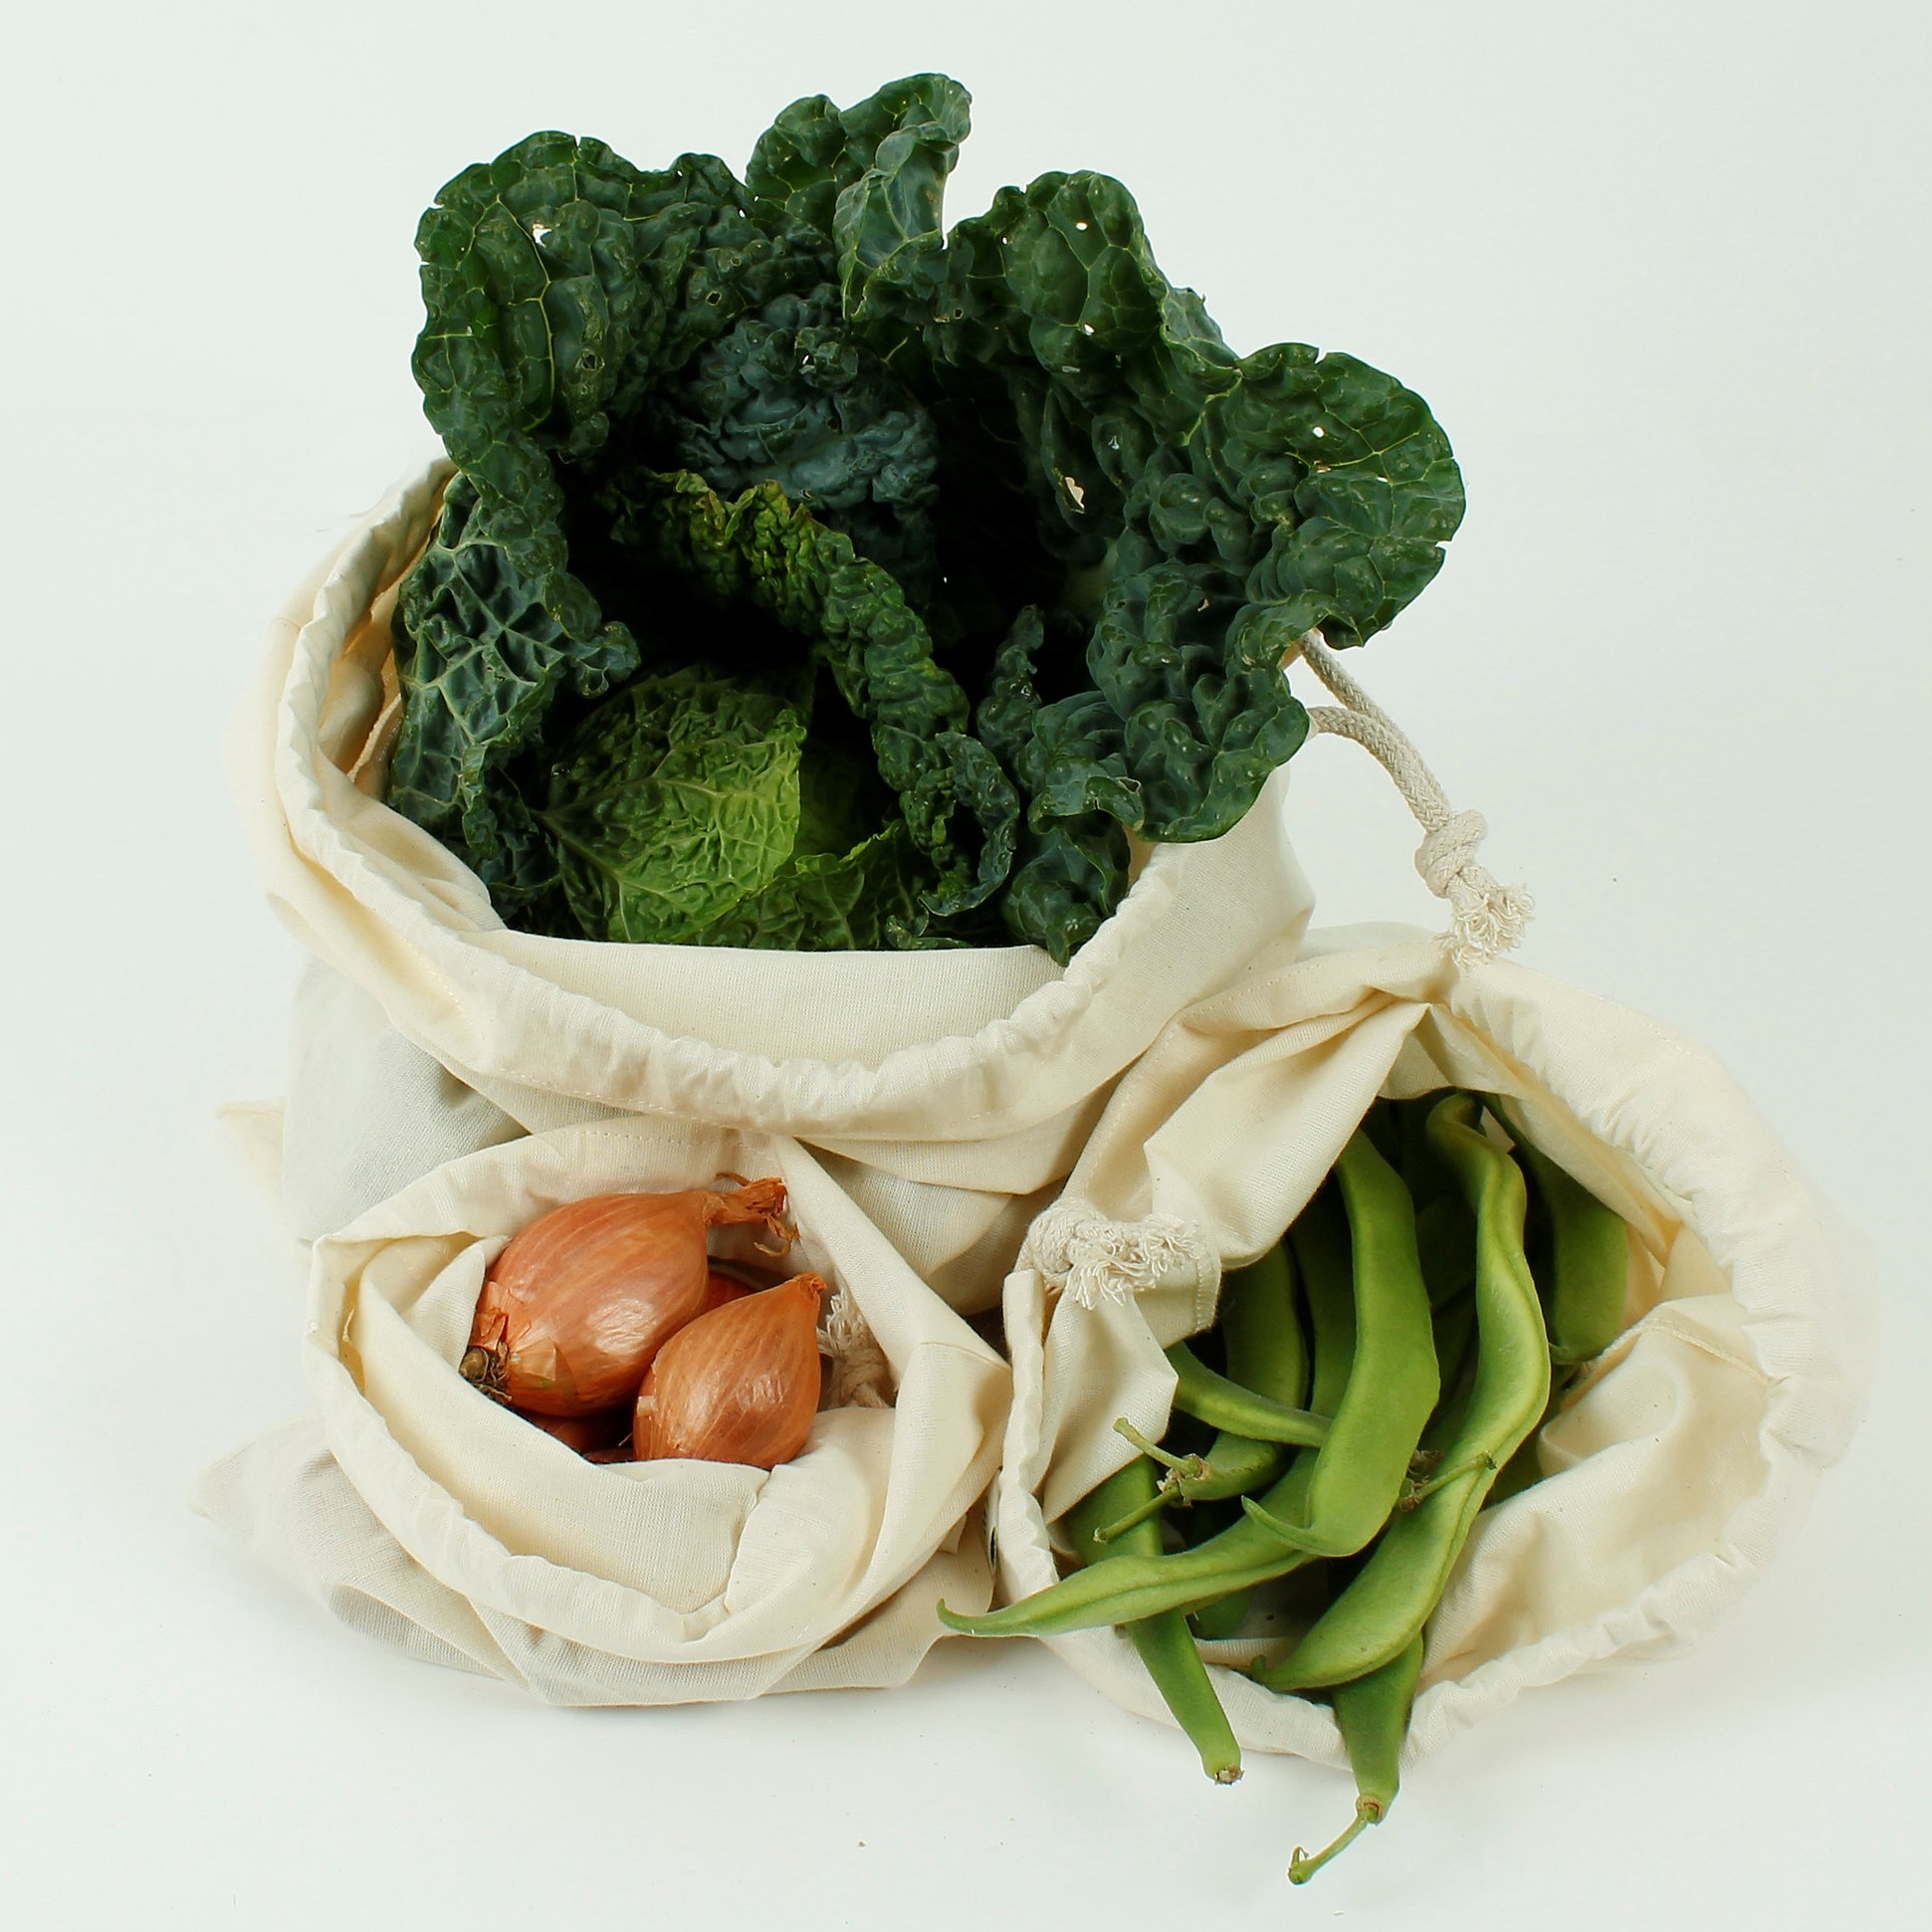 Cotton Produce Bags (Organic)